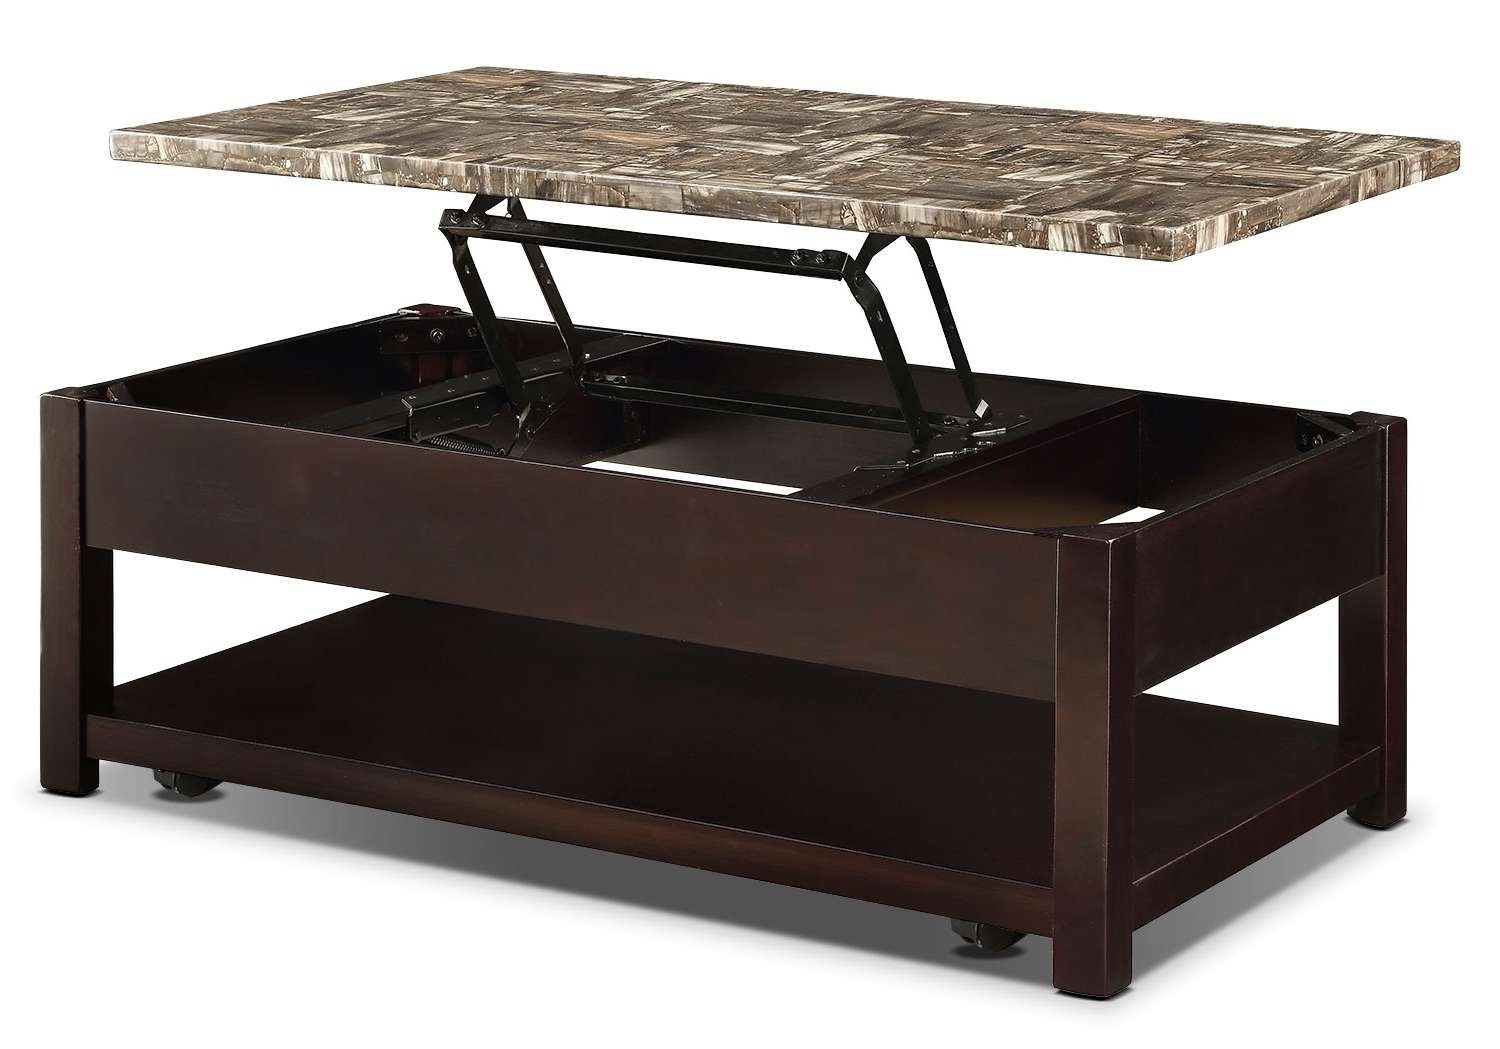 Coffee Table : Wonderful Large Square Coffee Tables Triangle Pertaining To 2017 Large Square Coffee Tables (View 8 of 20)